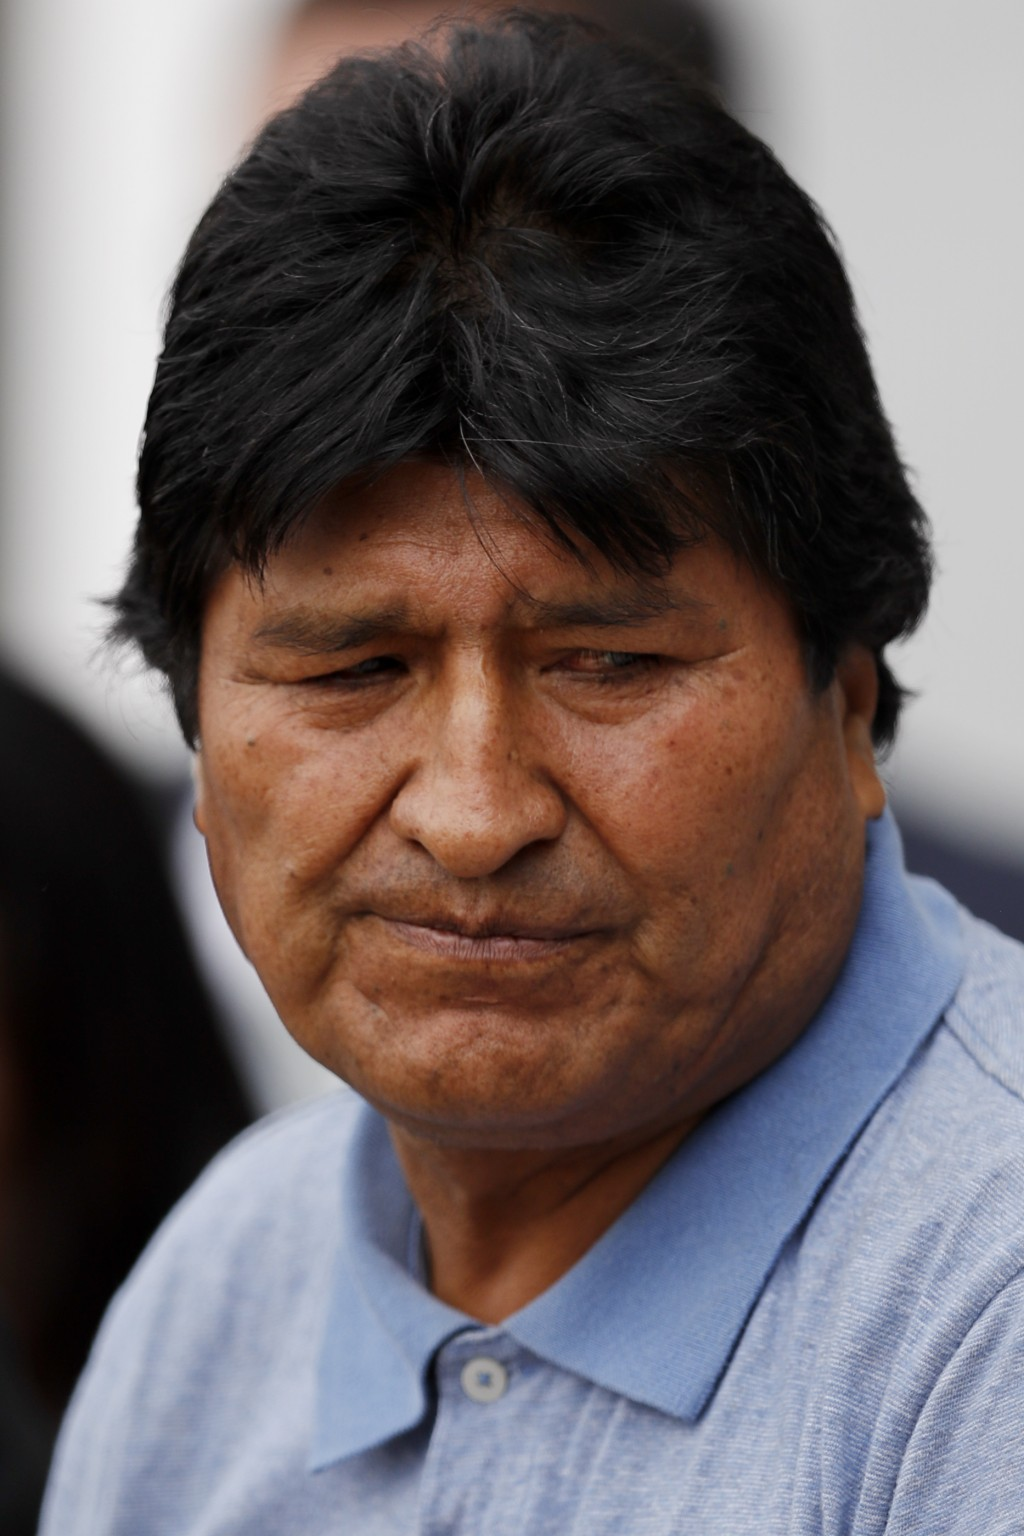 Former Bolivian President Evo Morales pauses as he speaks upon arrival in Mexico City, Tuesday, Nov. 12, 2019. Mexico granted asylum to Morales, who r...